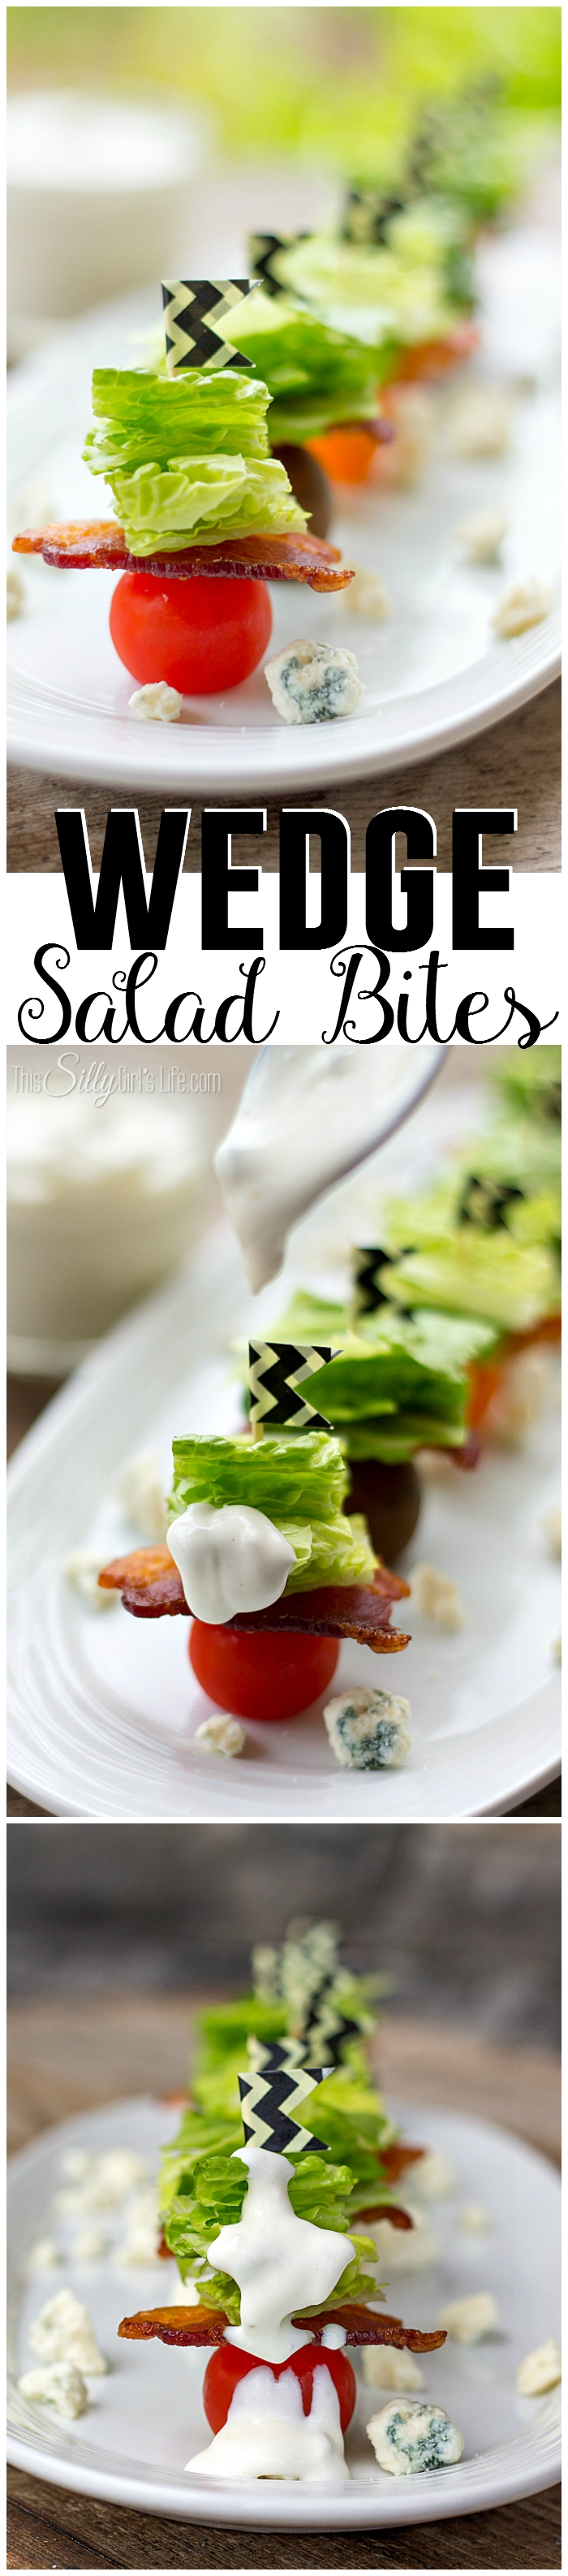 Wedge Salad Bites from ThisSillyGirlsLife-main